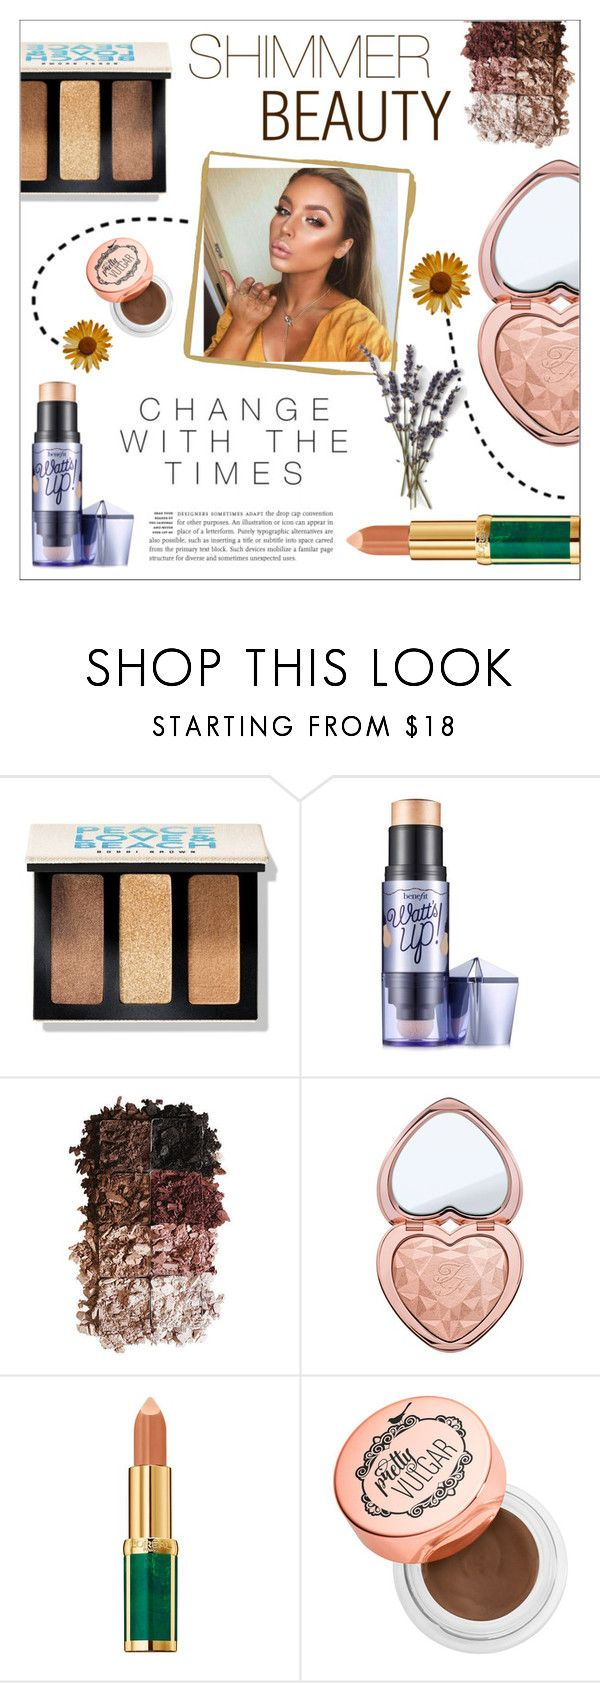 """""""SHIMMER BEAUTY"""" by sodapopcandy ❤ liked on Polyvore featuring beauty, Bobbi Brown Cosmetics, Benefit, LORAC, Too Faced Cosmetics, Balmain, Sephora Collection, NudeMakeup, highlighter and shimmering"""